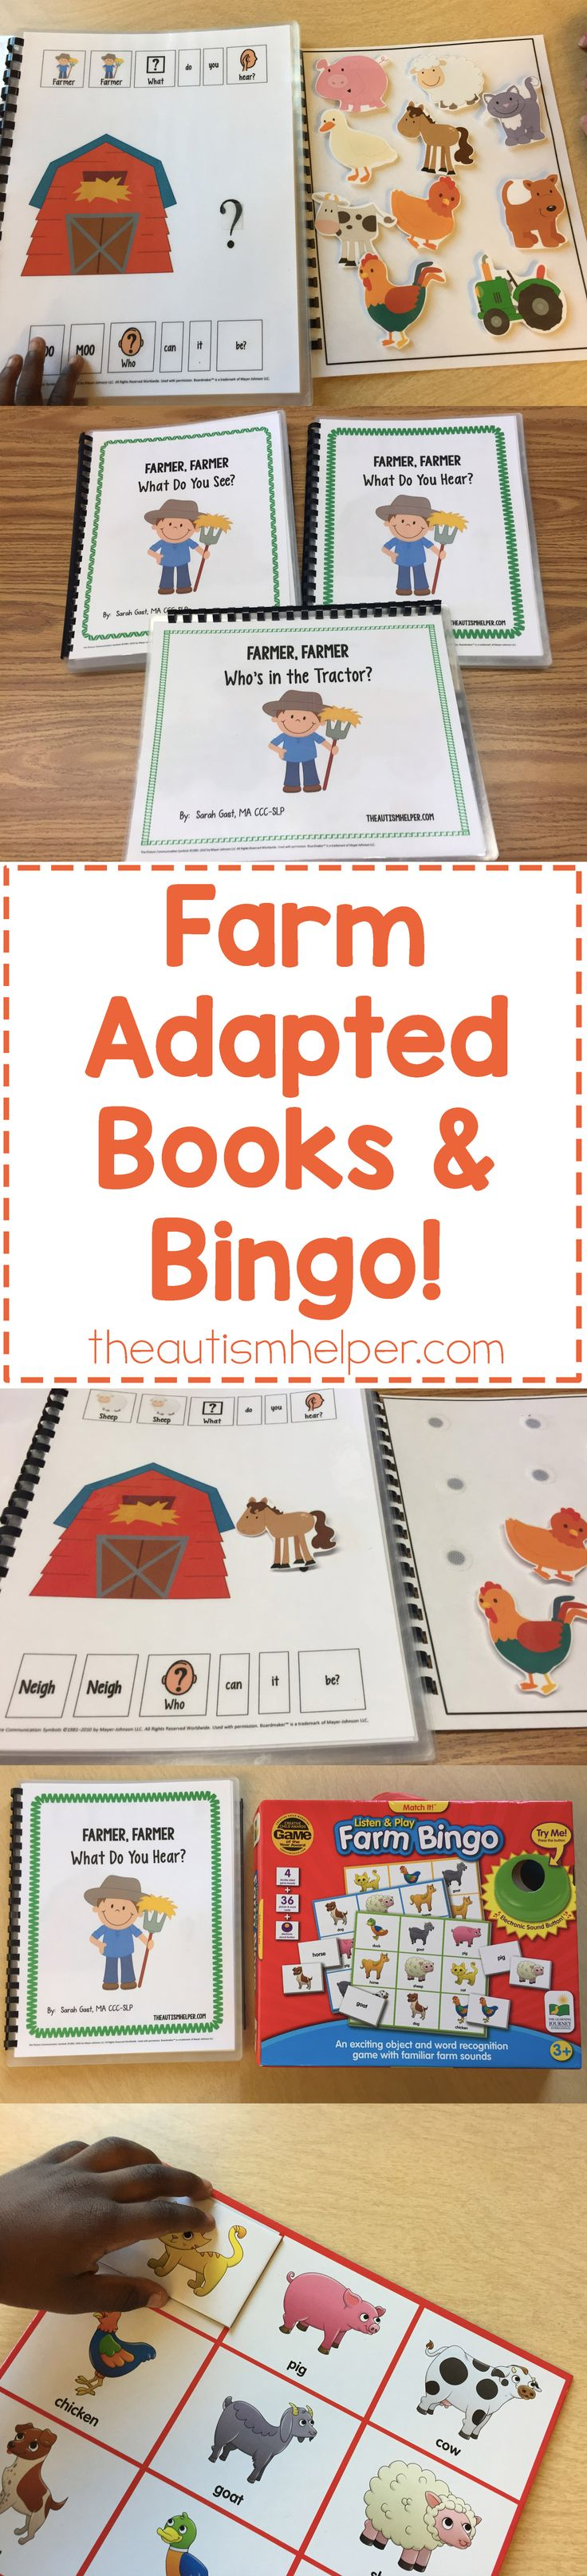 Sarah the Speech Helper shares her farm adapted books & activities plus tips for using in speech therapy on the blog! From theautismhelper.com #theautismhelper